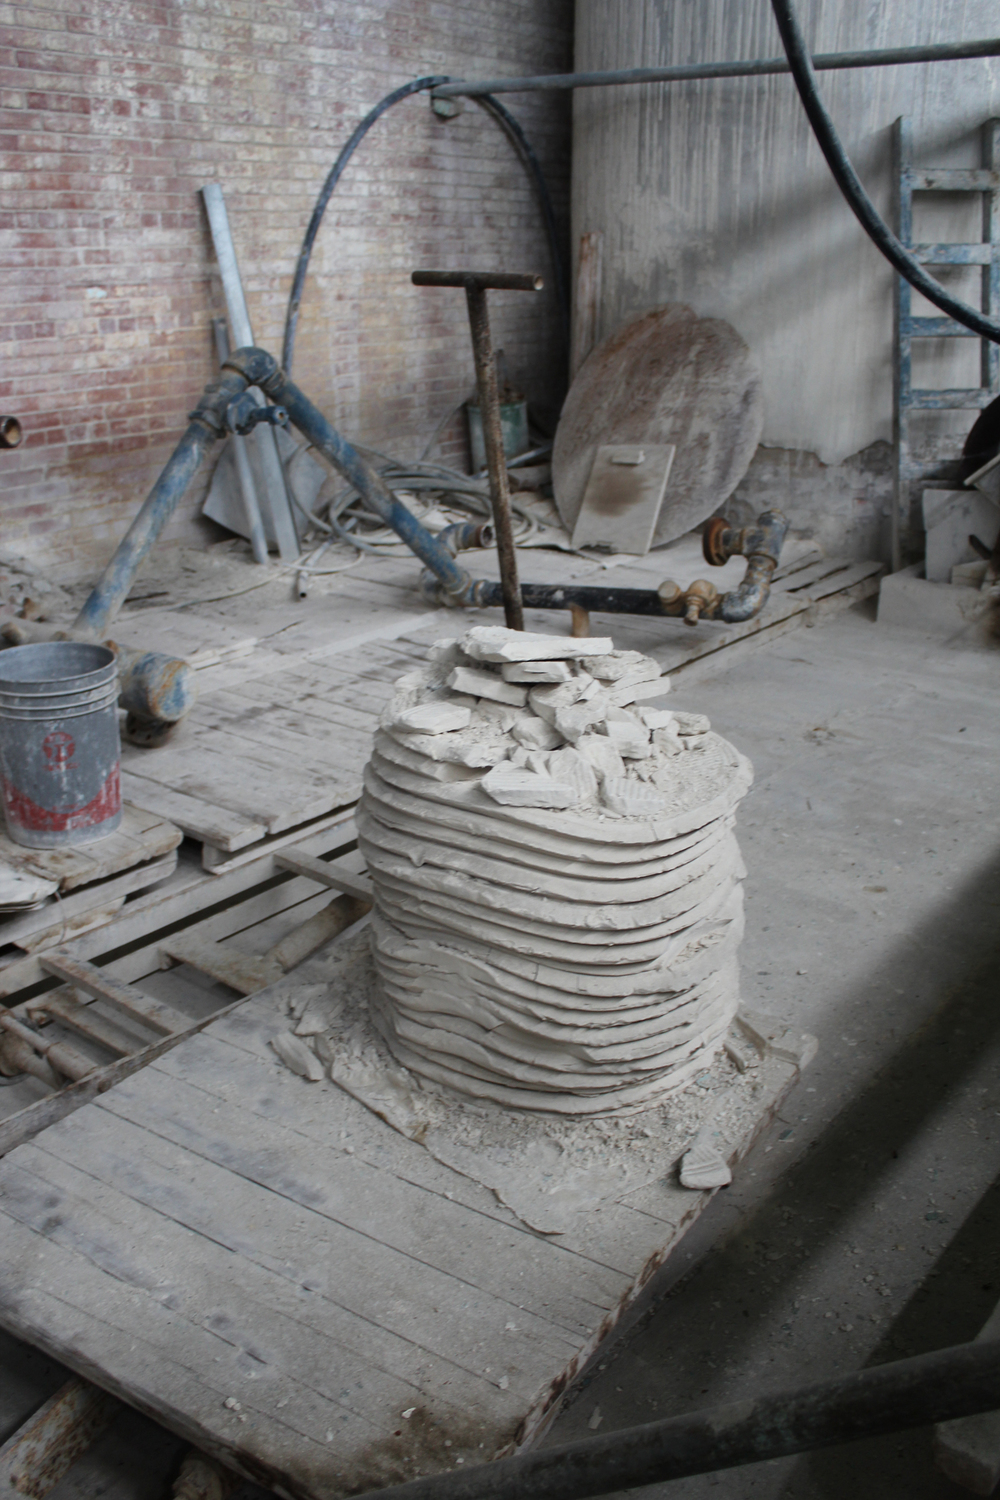 The clay cakes produced by the slip machine.